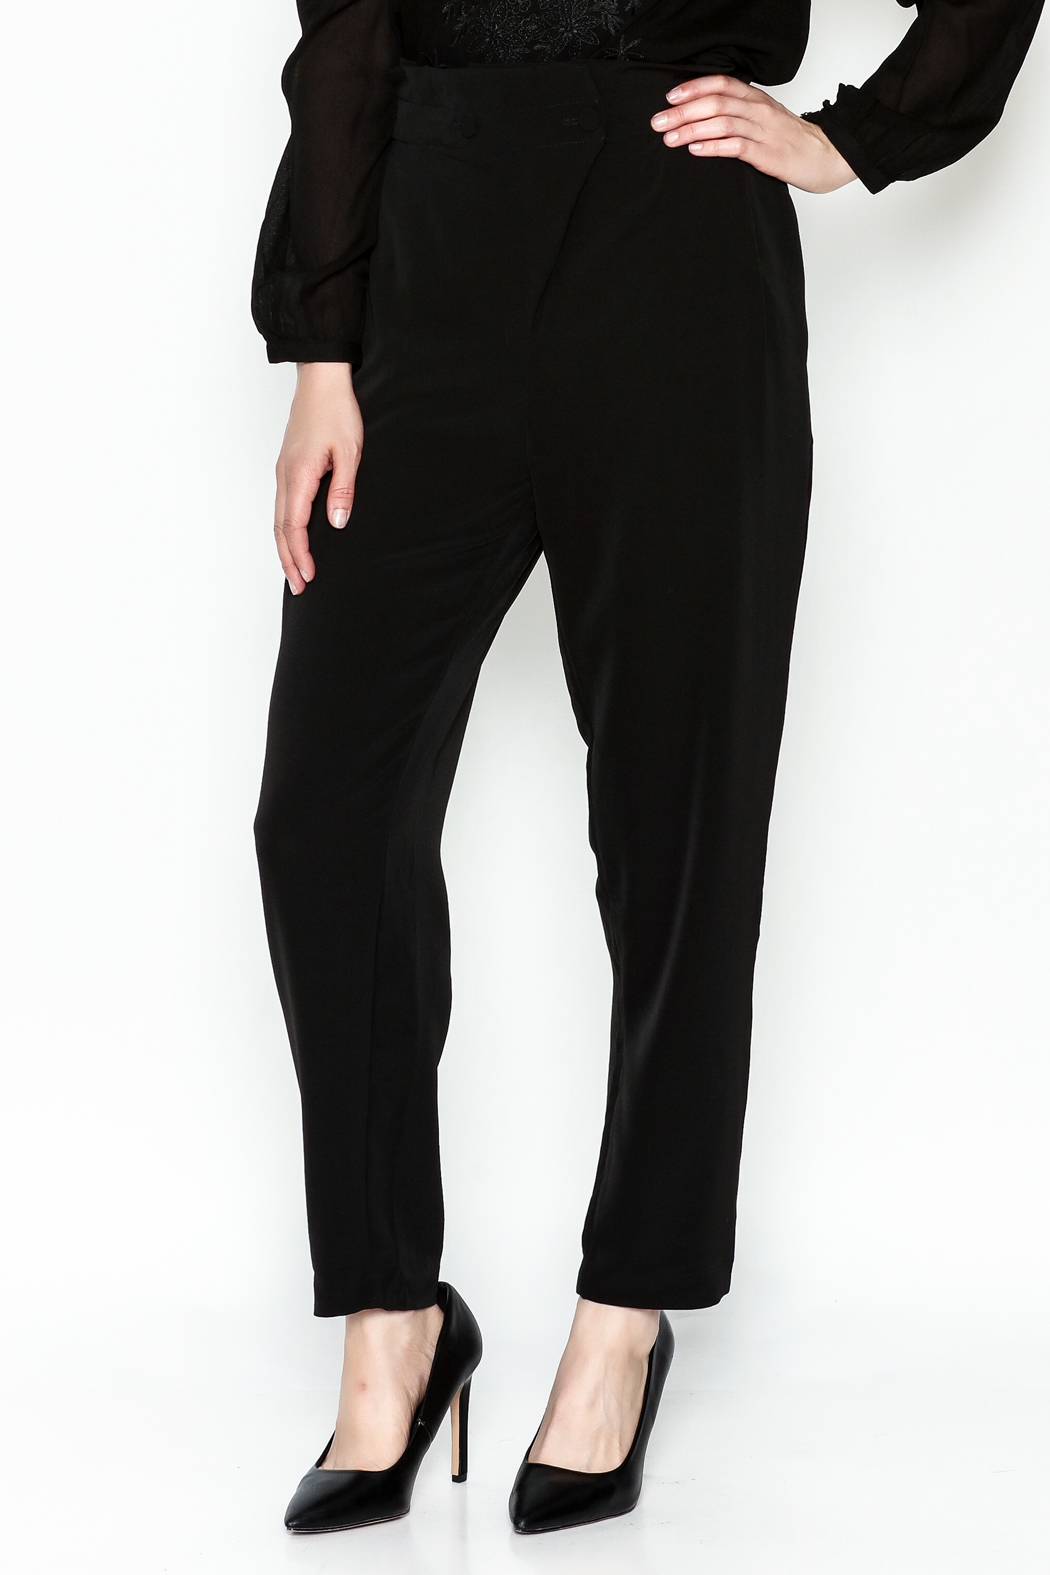 WREN & WILLA Gold Button Pants - Main Image